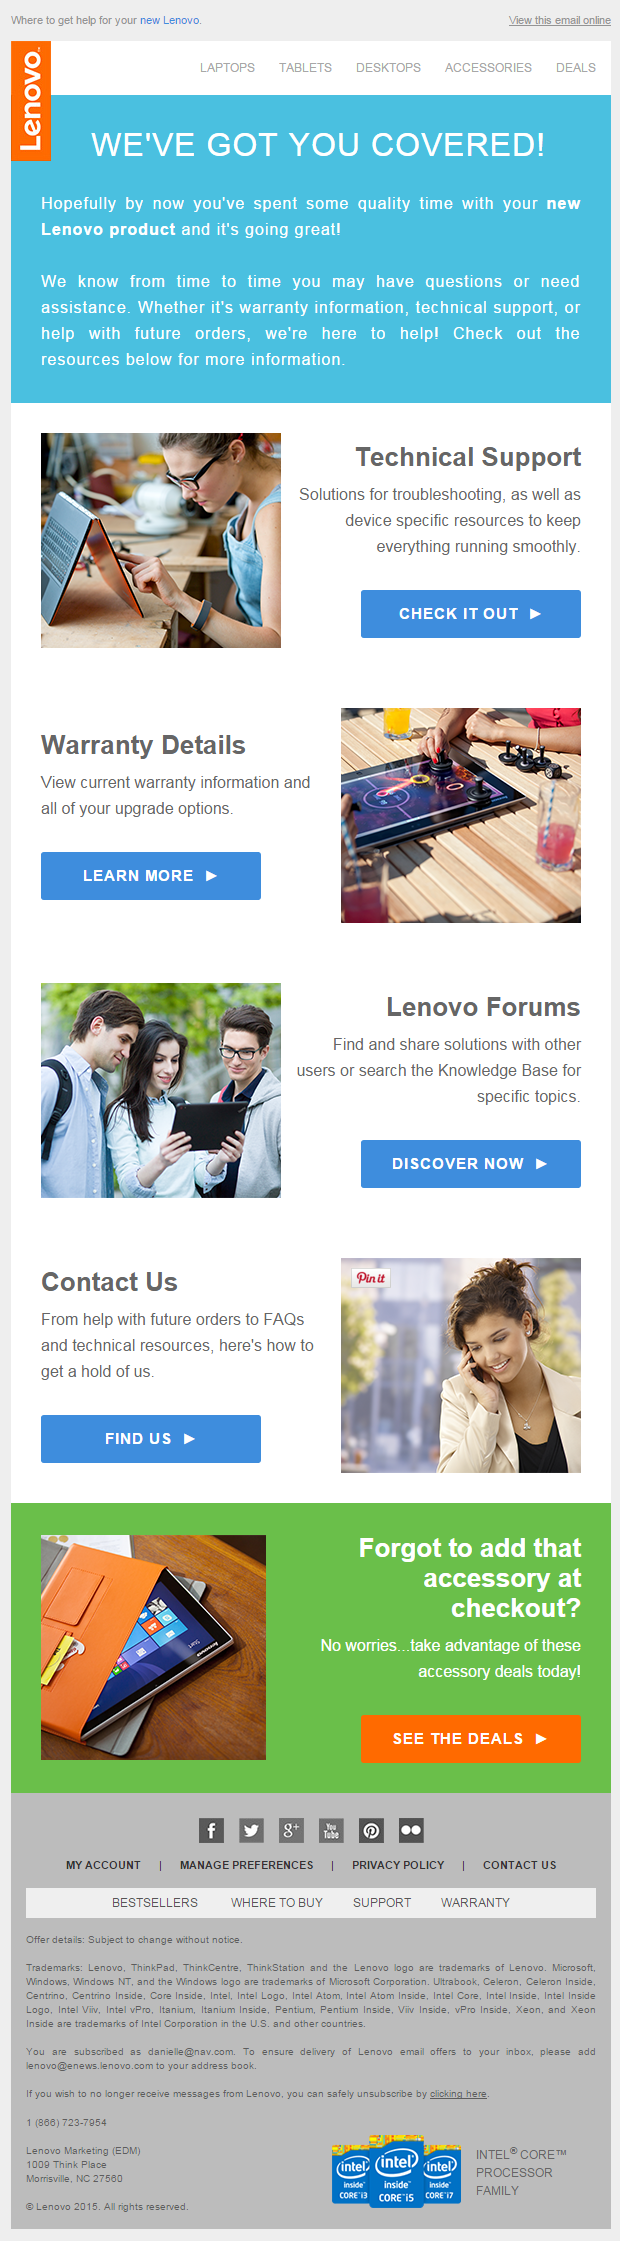 Lenovo welcome email 2015